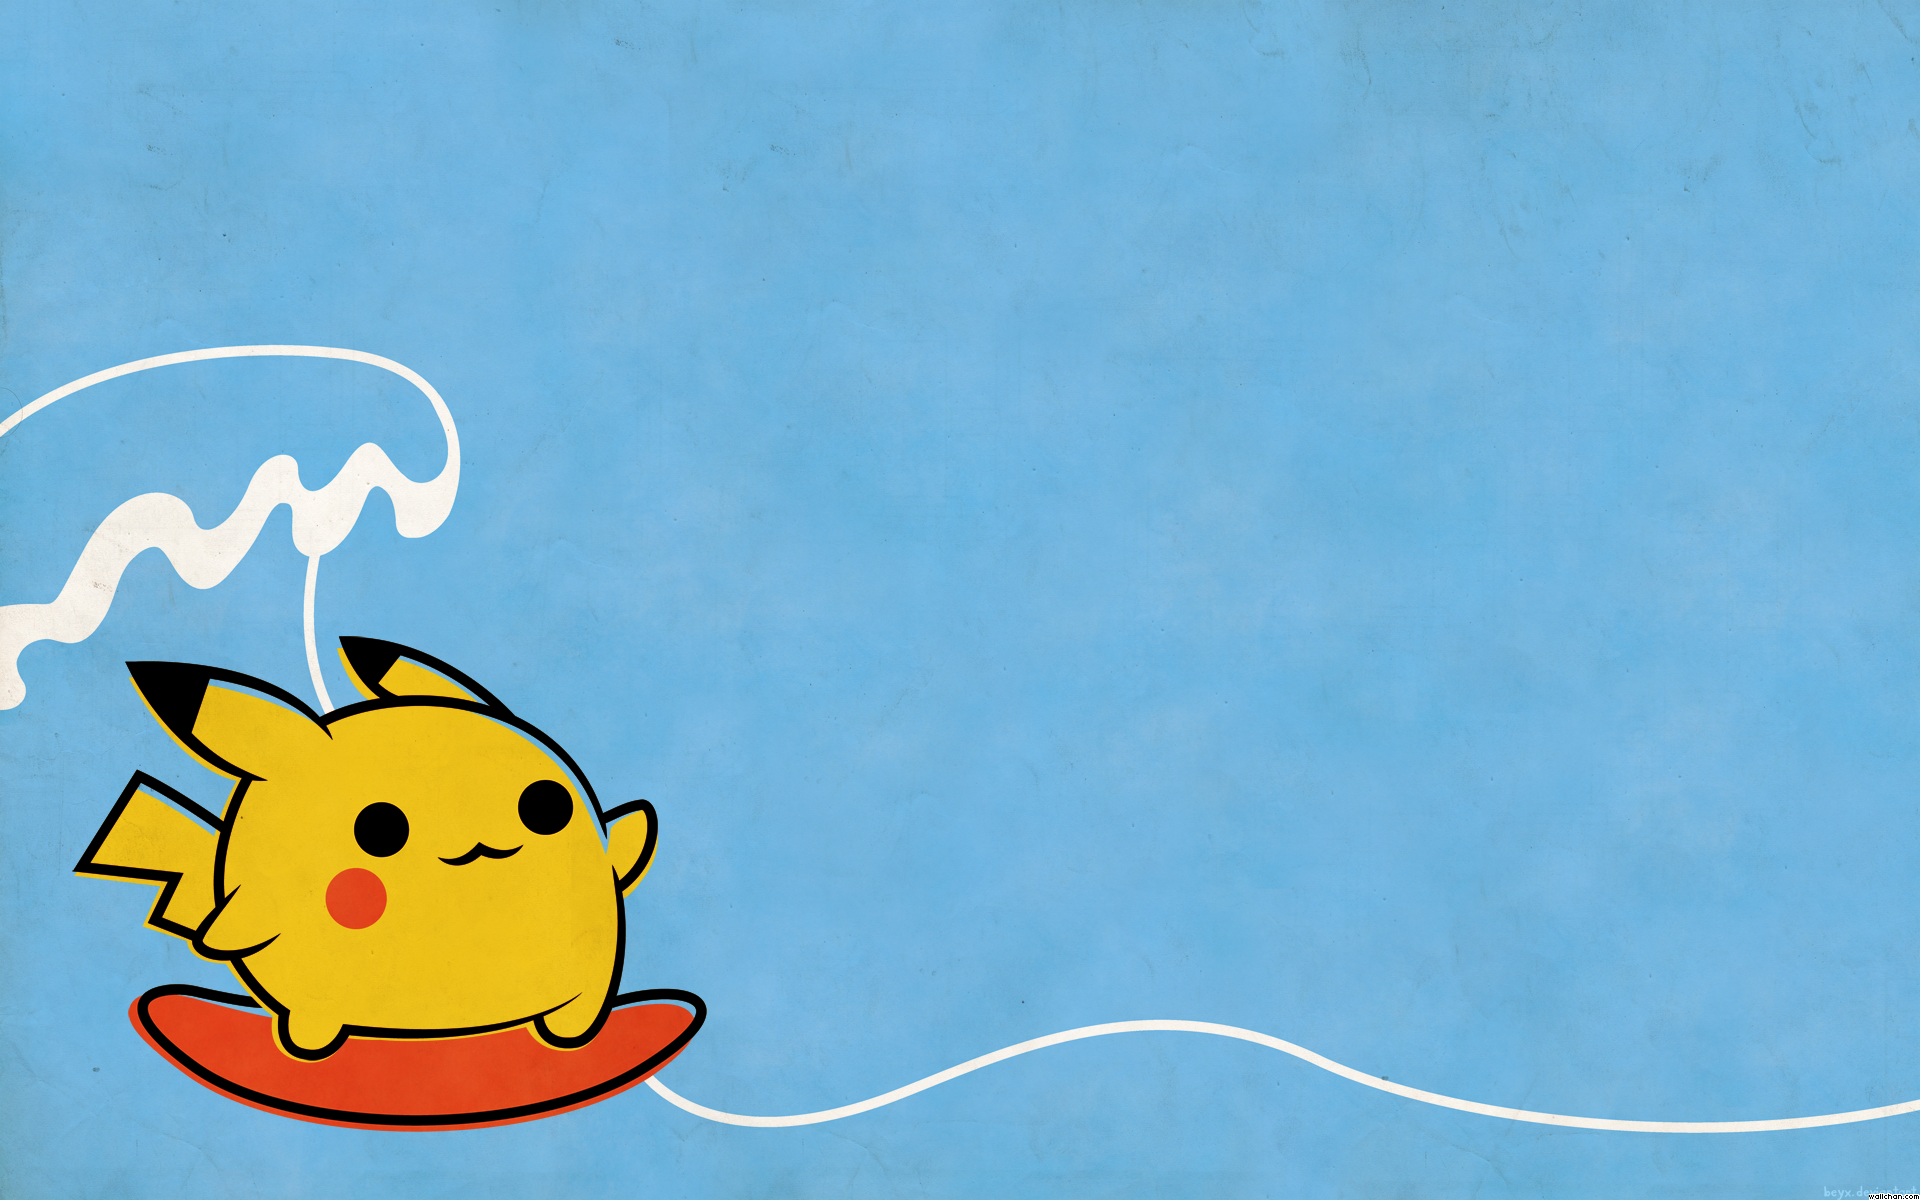 Cute Pokemon Background Cute Pokemon Wallpaper Pokemon Backgrounds Pikachu Wallpaper